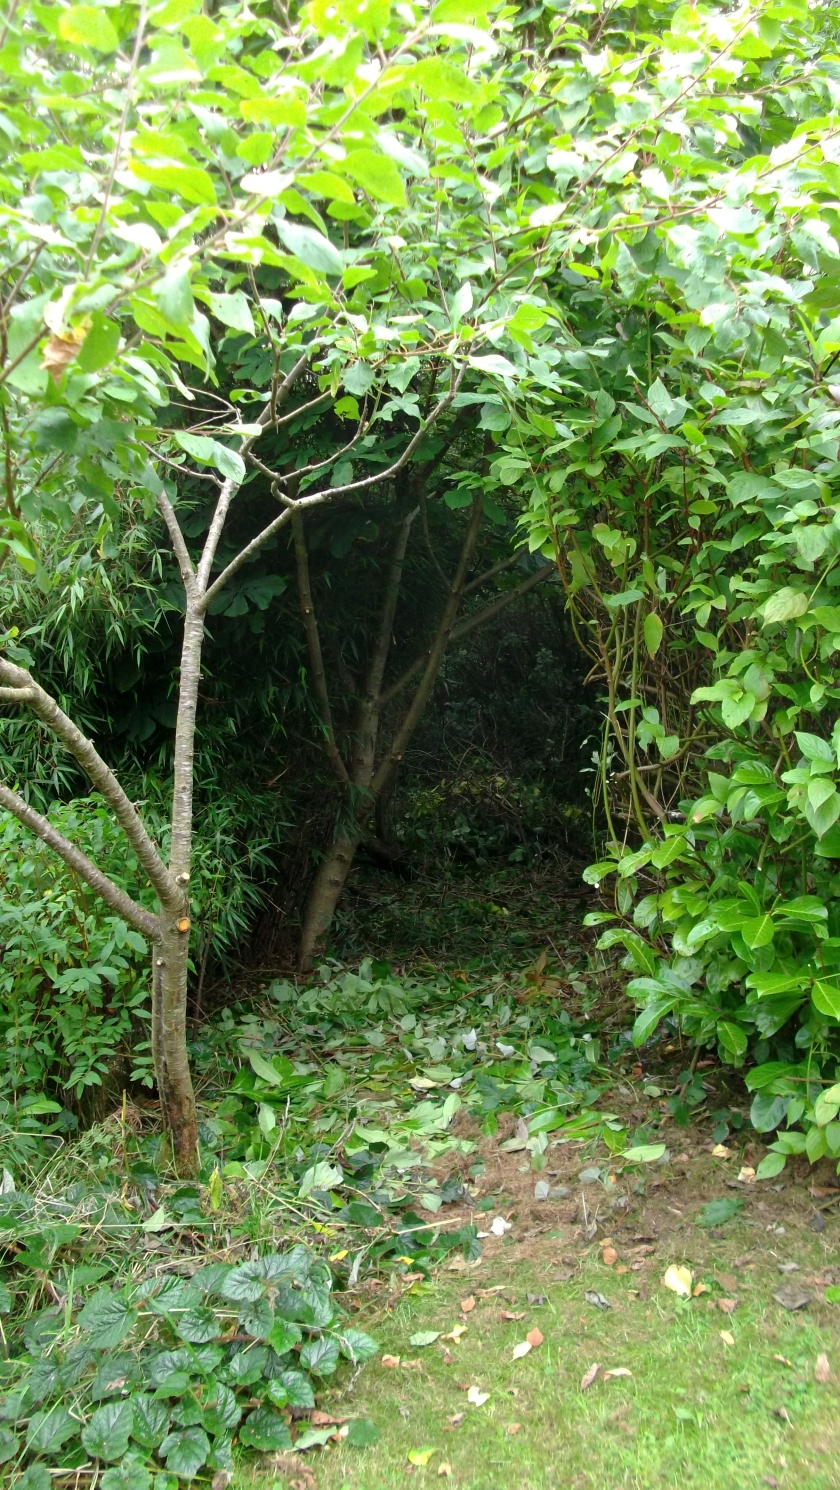 Permaculture Gardens at bealtainecottage.com 001